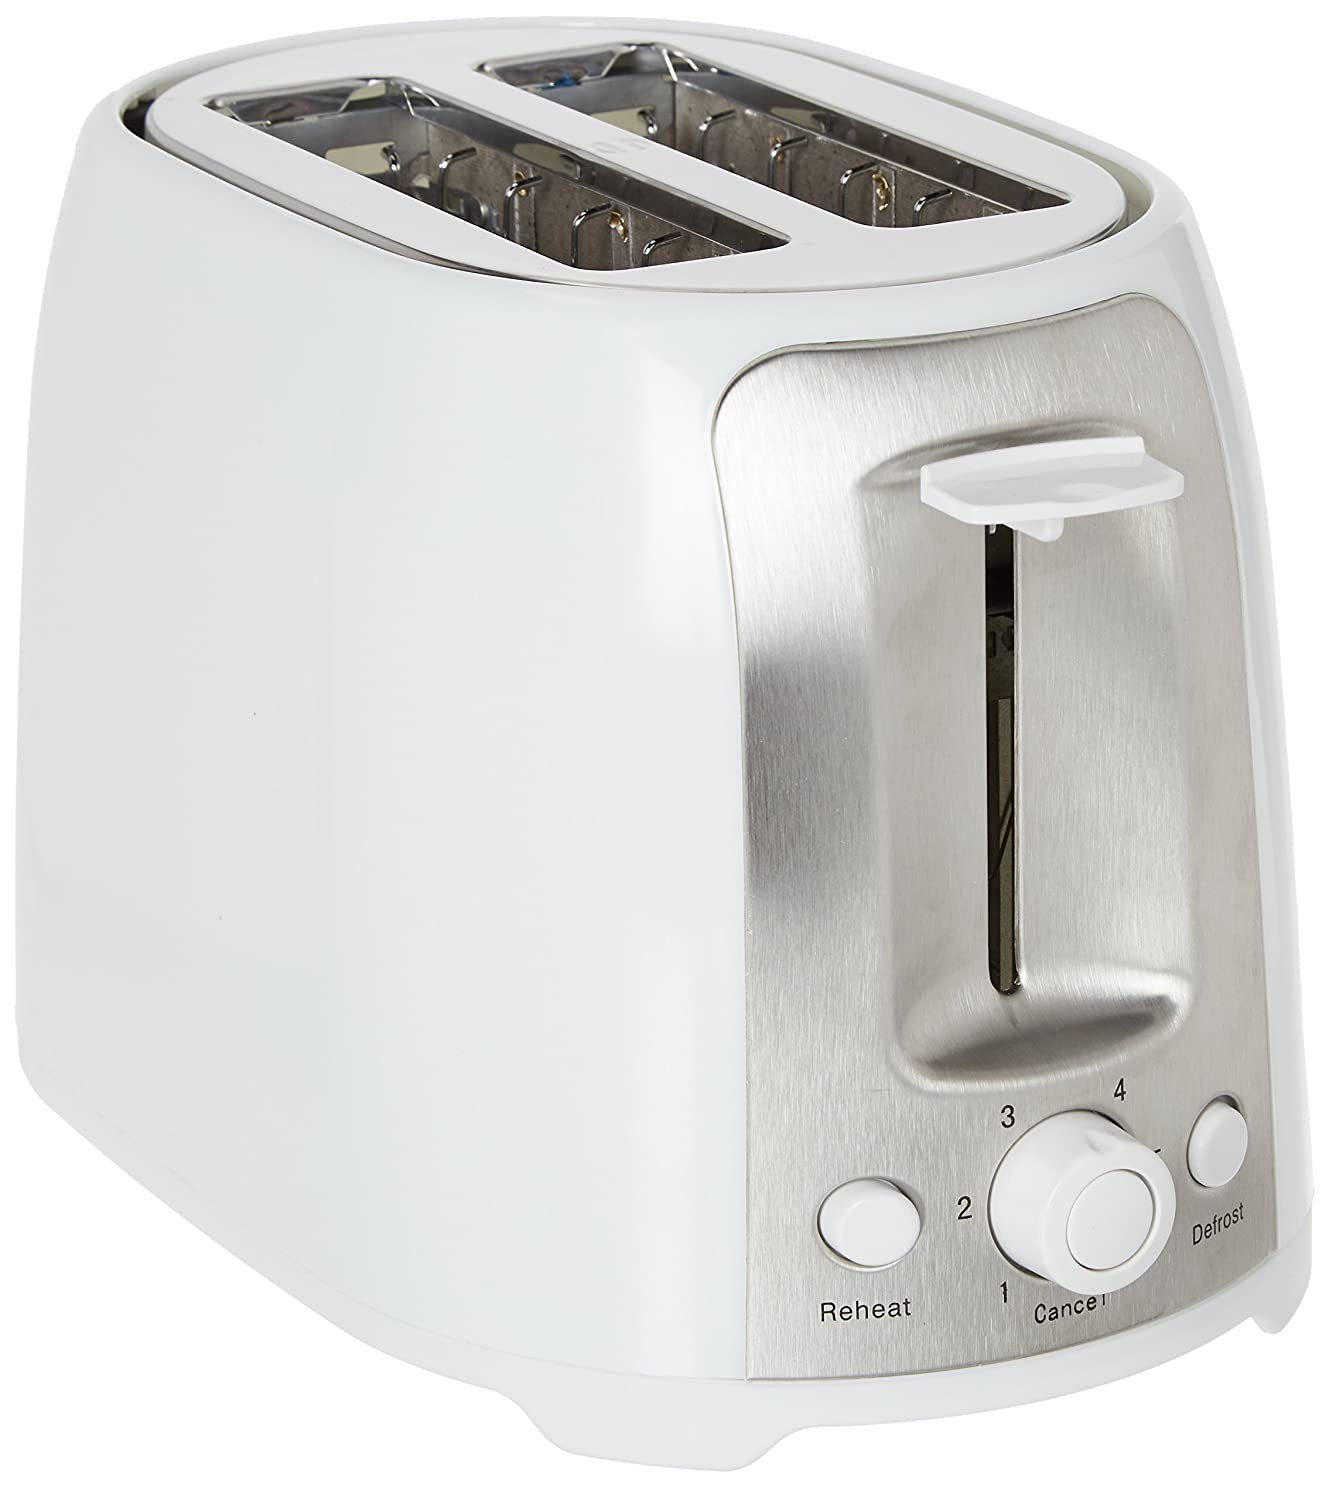 Brentwood TS-292W Cool Touch 2-Slice Extra Wide Slot Toaster, White/Silver, Extra Wide Slots for Variety of Breads, Auto-Centering Guides, 6-Setting Browning Knob, Non-Slip Feet